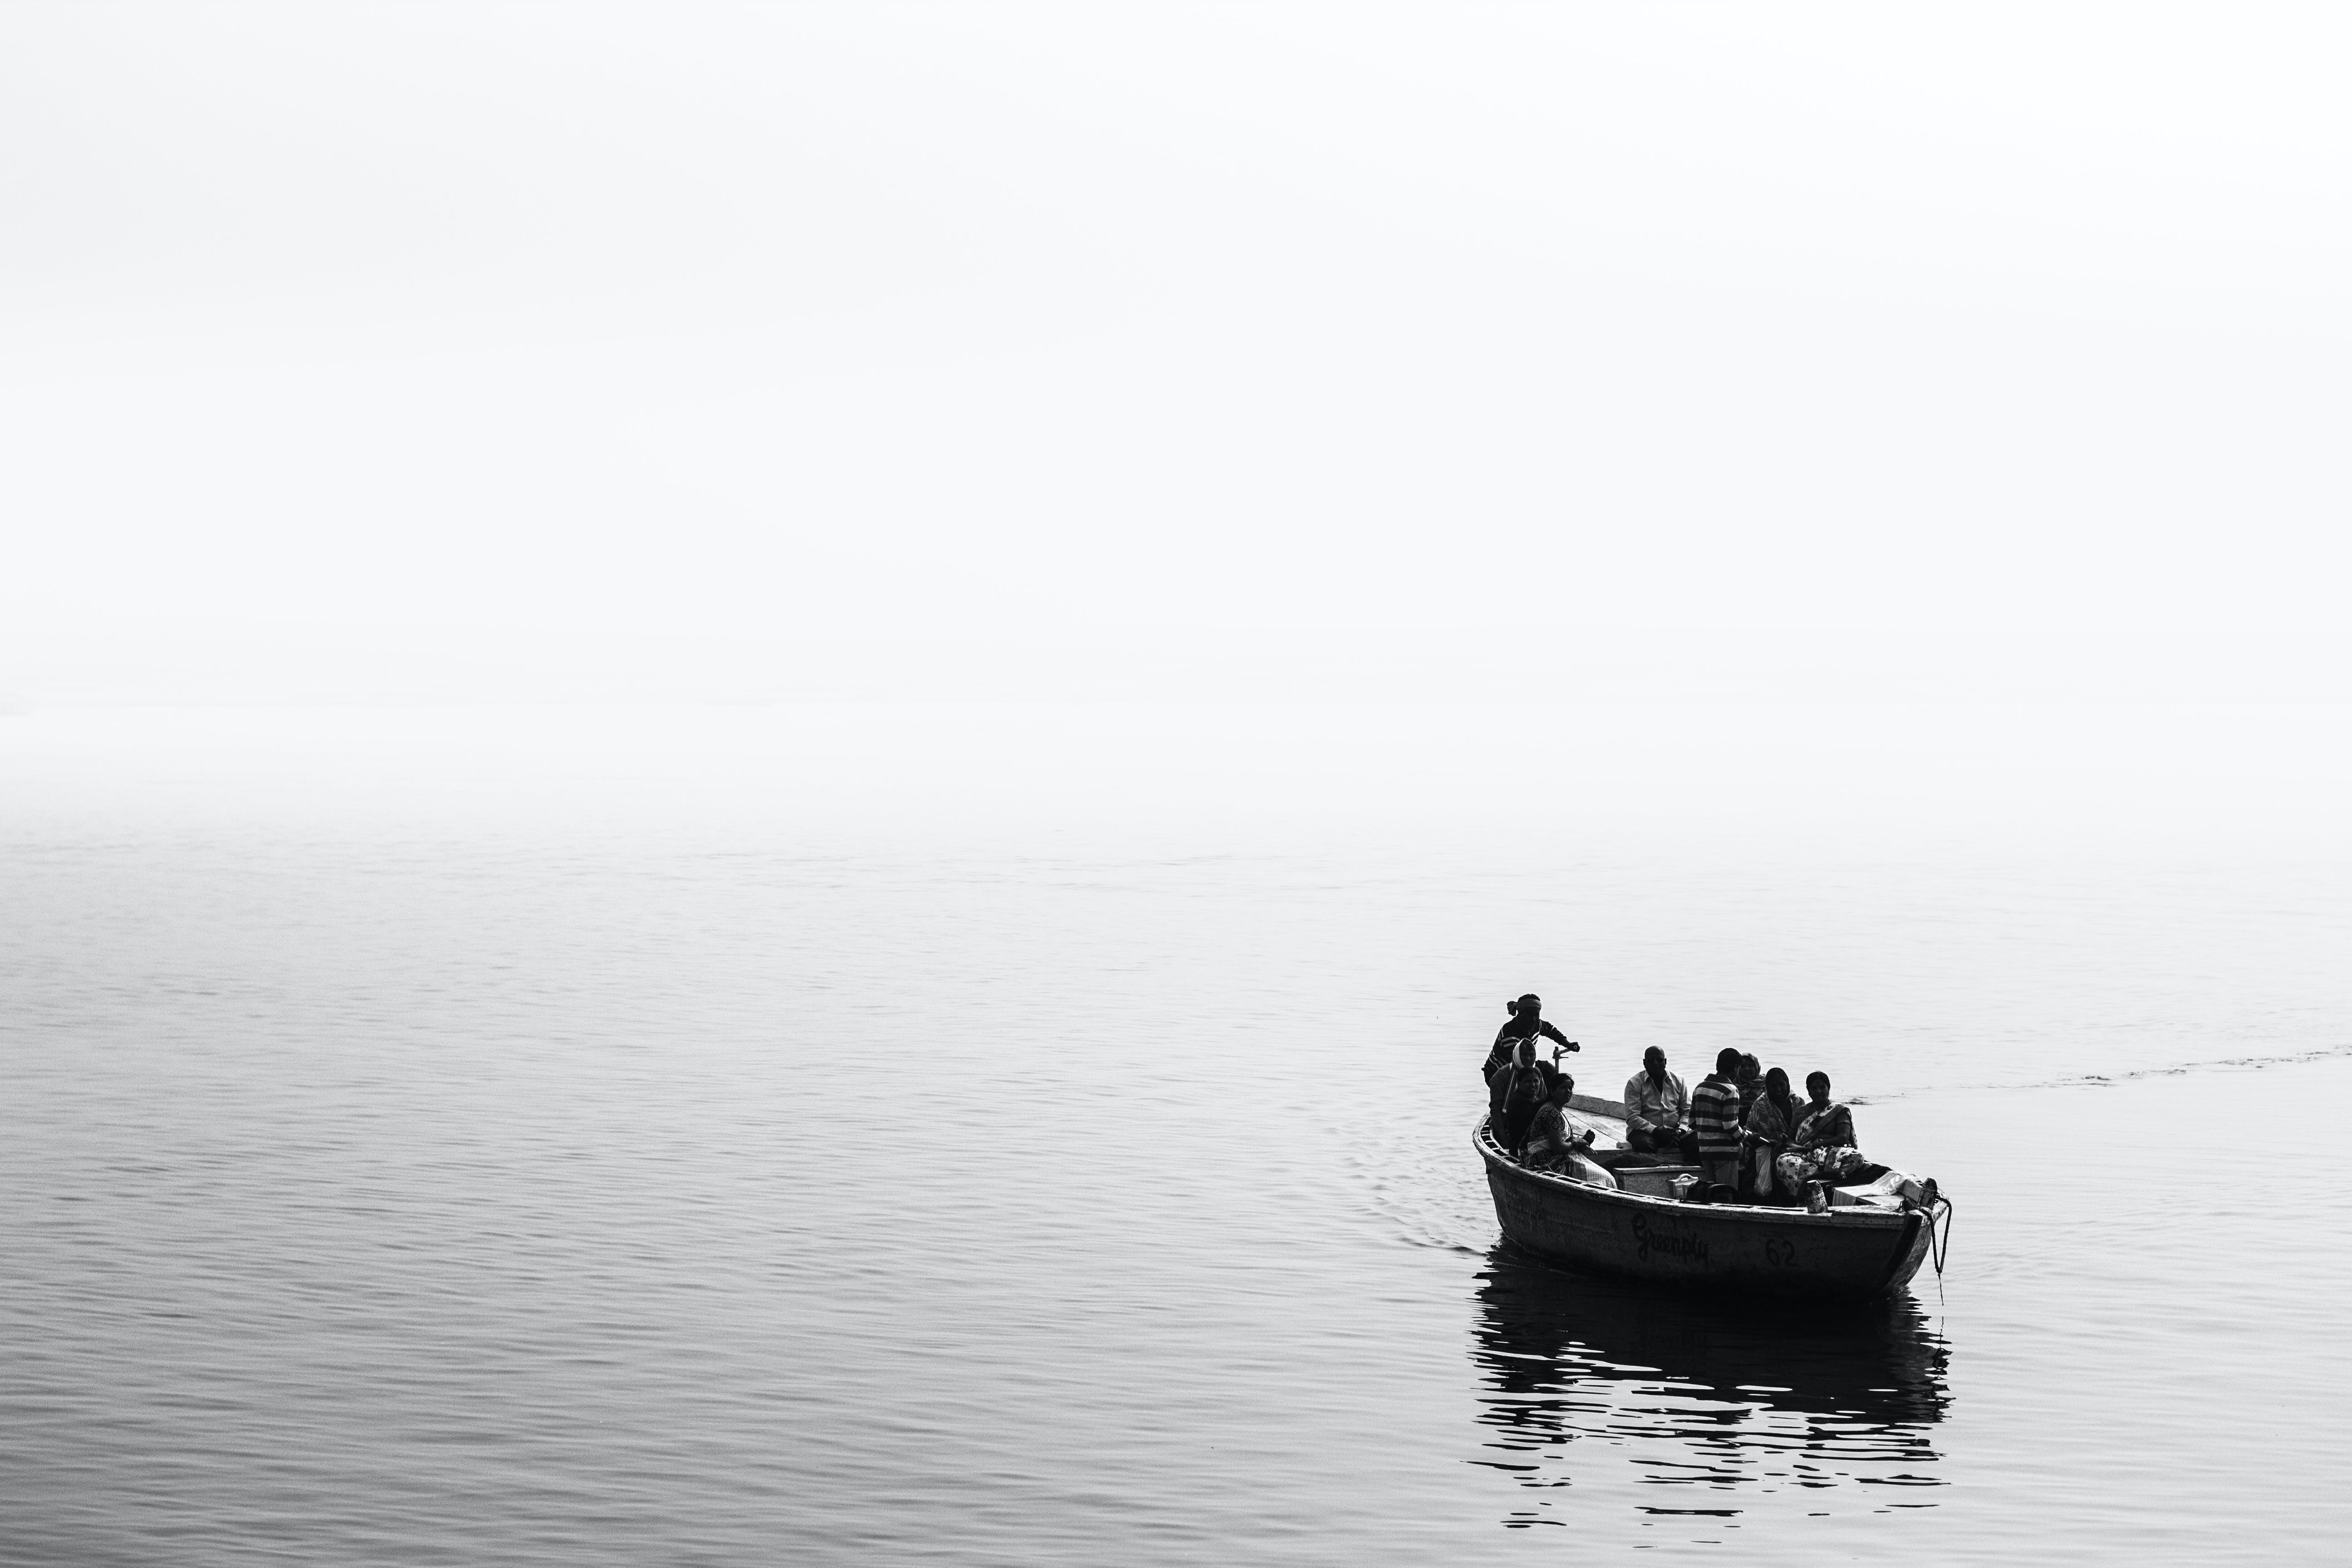 Free stock photo of black and white, boat, calm waters, india